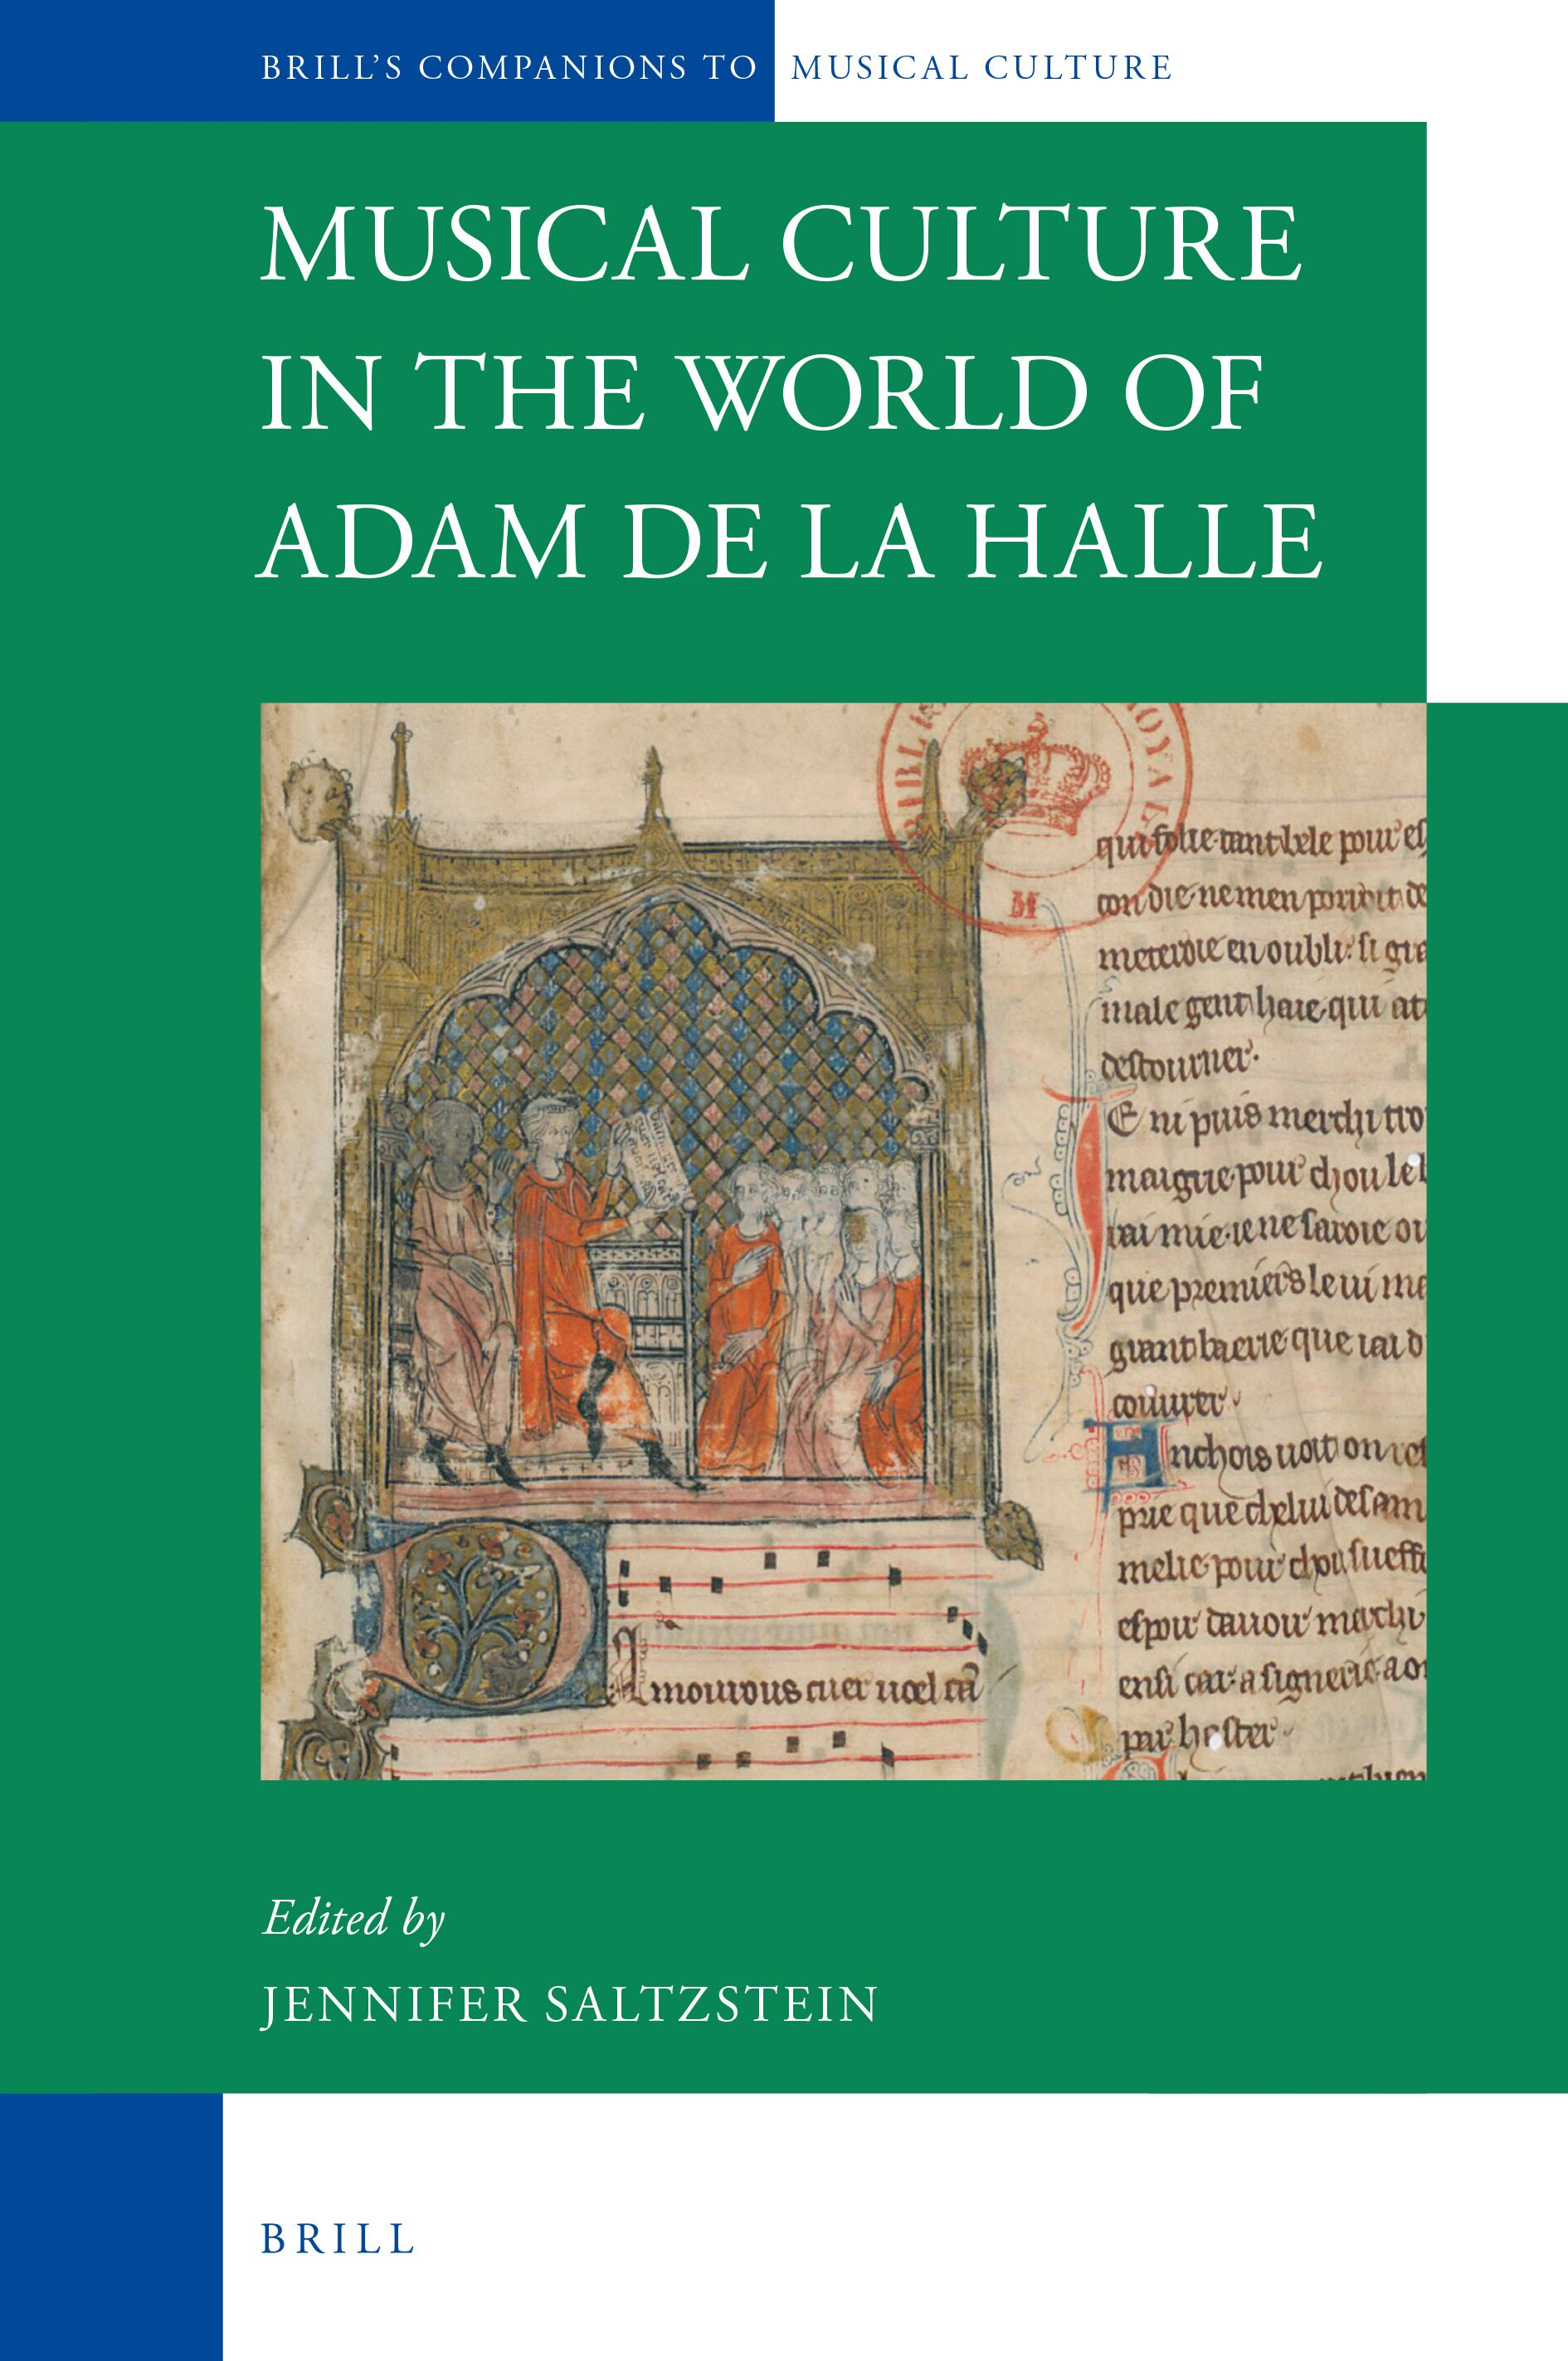 The Songs Of Adam De La Halle In Musical Culture In The